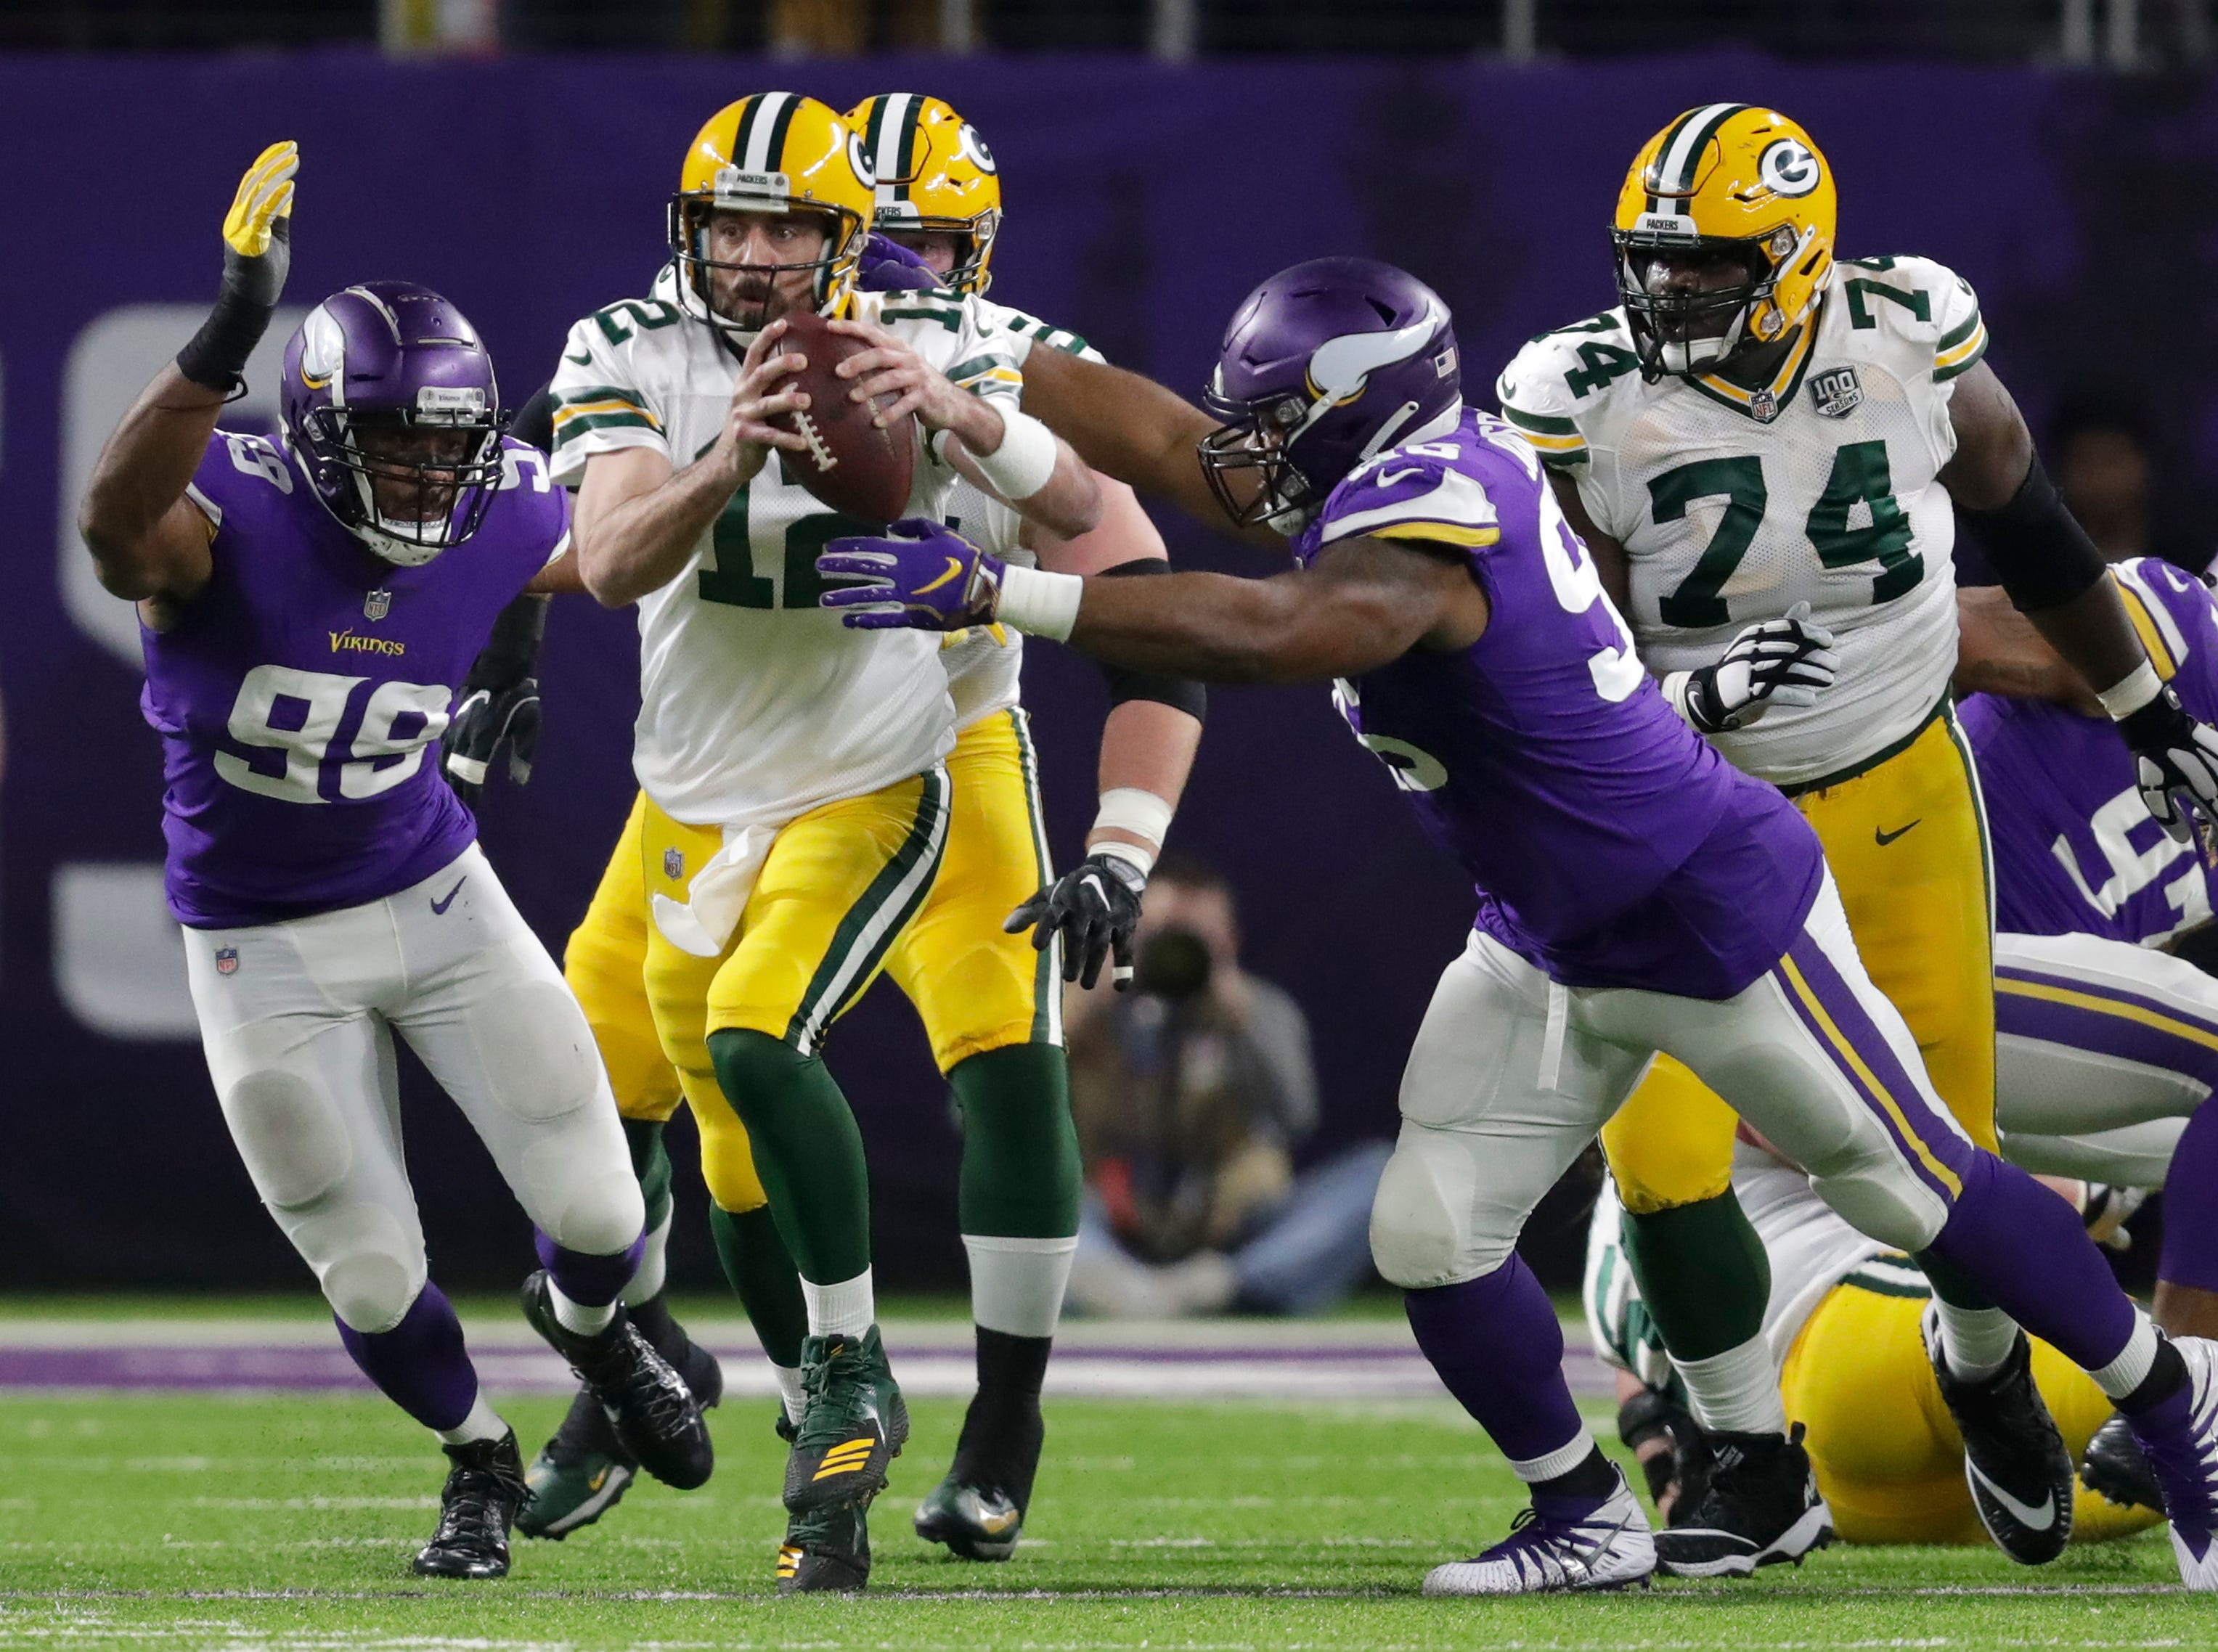 Green Bay Packers quarterback Aaron Rodgers (12) is brought down by Minnesota Vikings defensive end Danielle Hunter (99) and defensive tackle Tom Johnson (96) in the second quarter during their football game Sunday, November 25, 2018, at U.S. Bank Stadium in Minneapolis, Minn. 